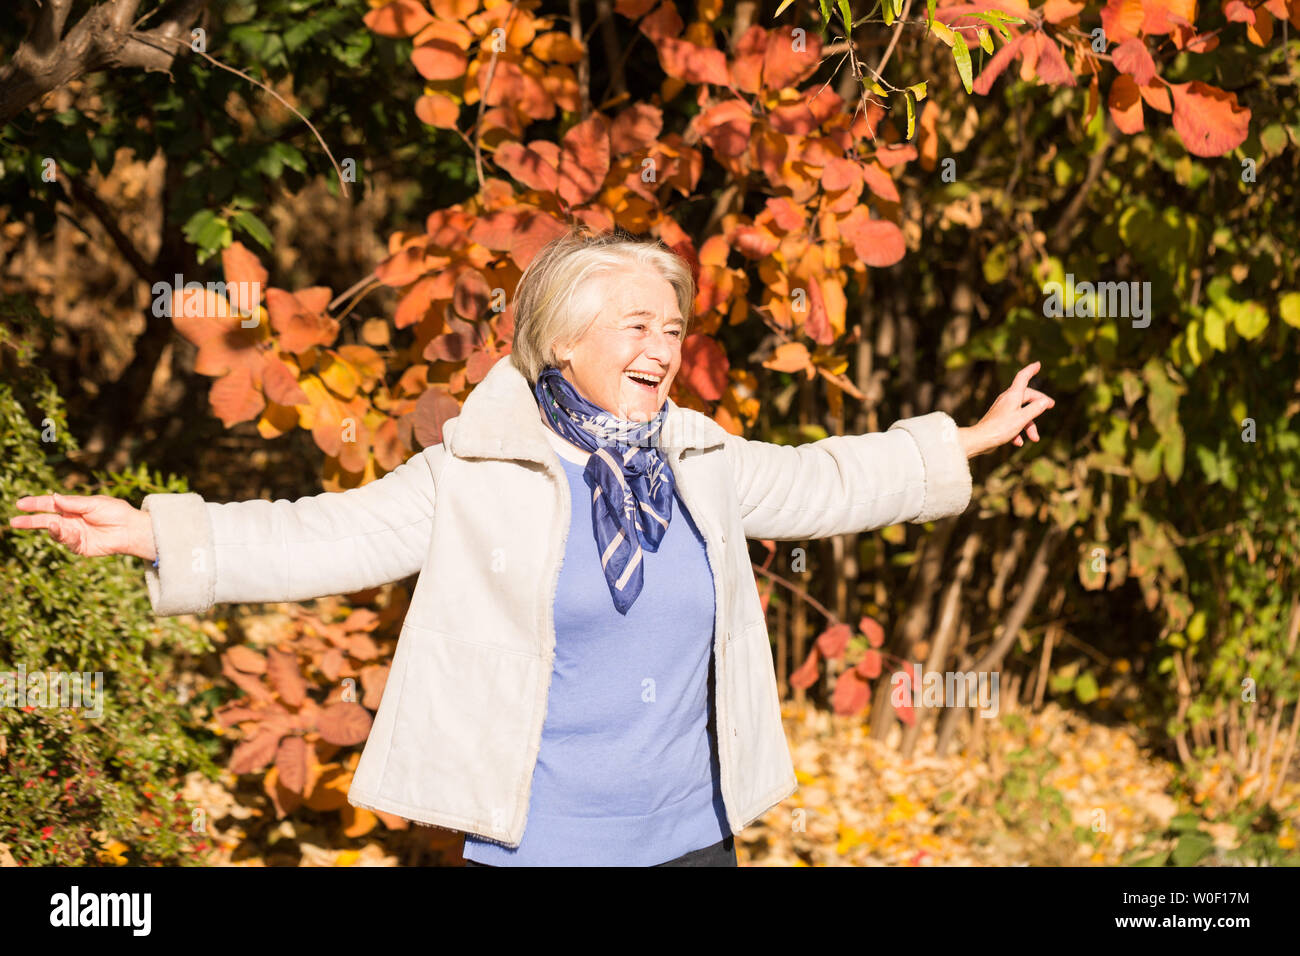 View of a pretty smiling grandma arms spread in nature in autumnal colors. - Stock Image